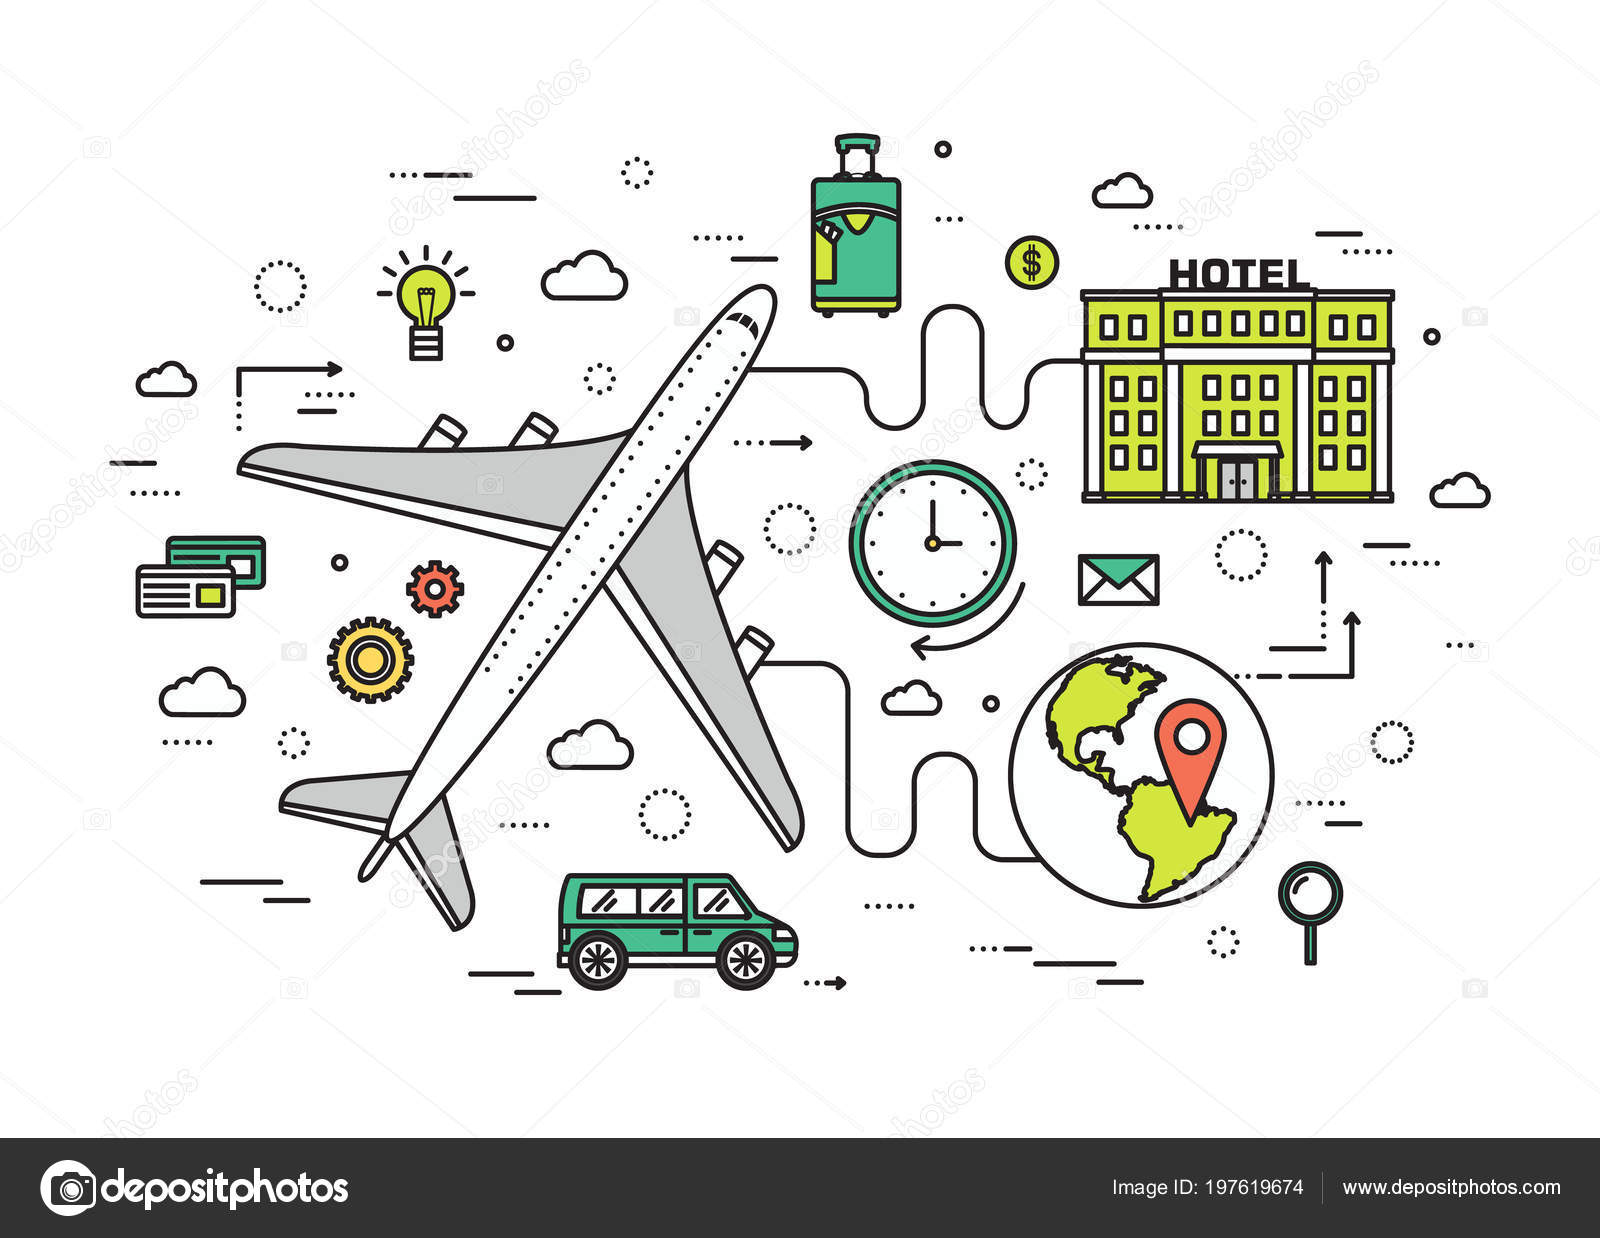 Modern Plane Diagram Trusted Wiring Diagrams Parts Of A Thin Line Travel Vacation Illustration Concept Infographic Names